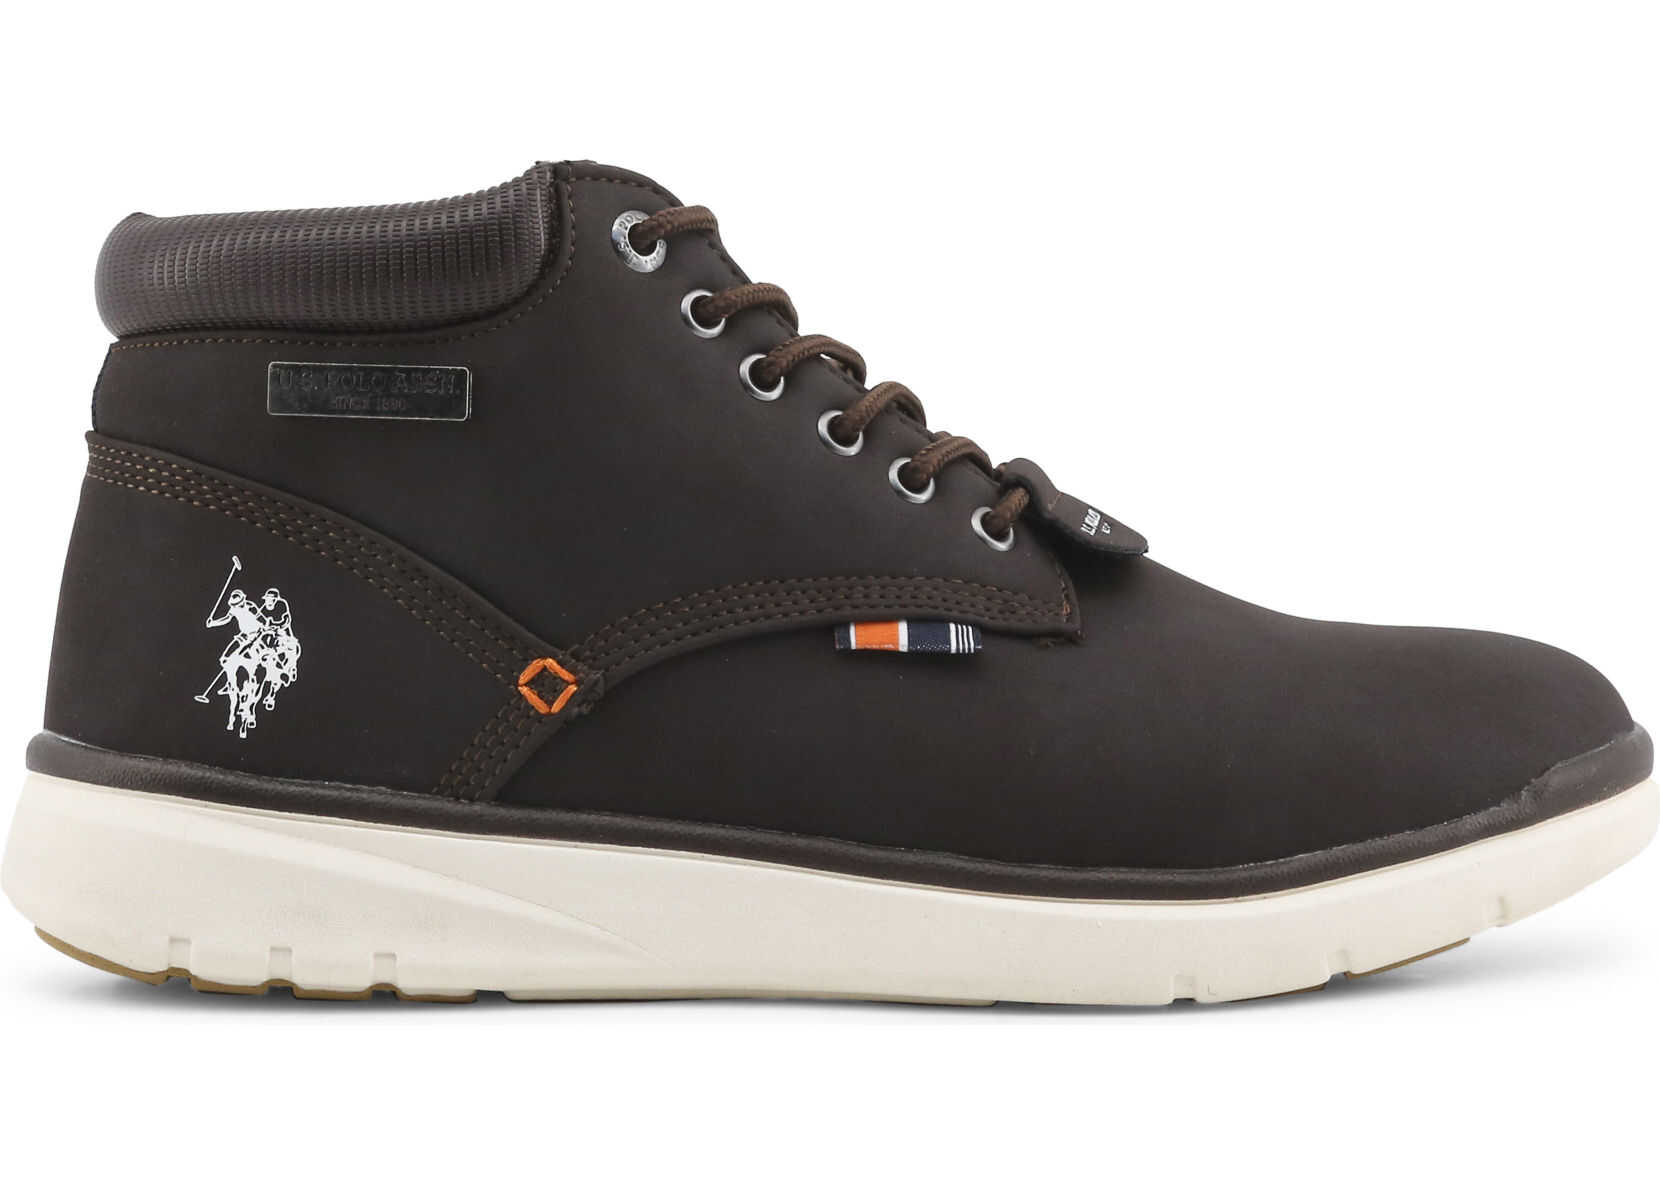 U.S. POLO ASSN. Ygor4081W8 Brown